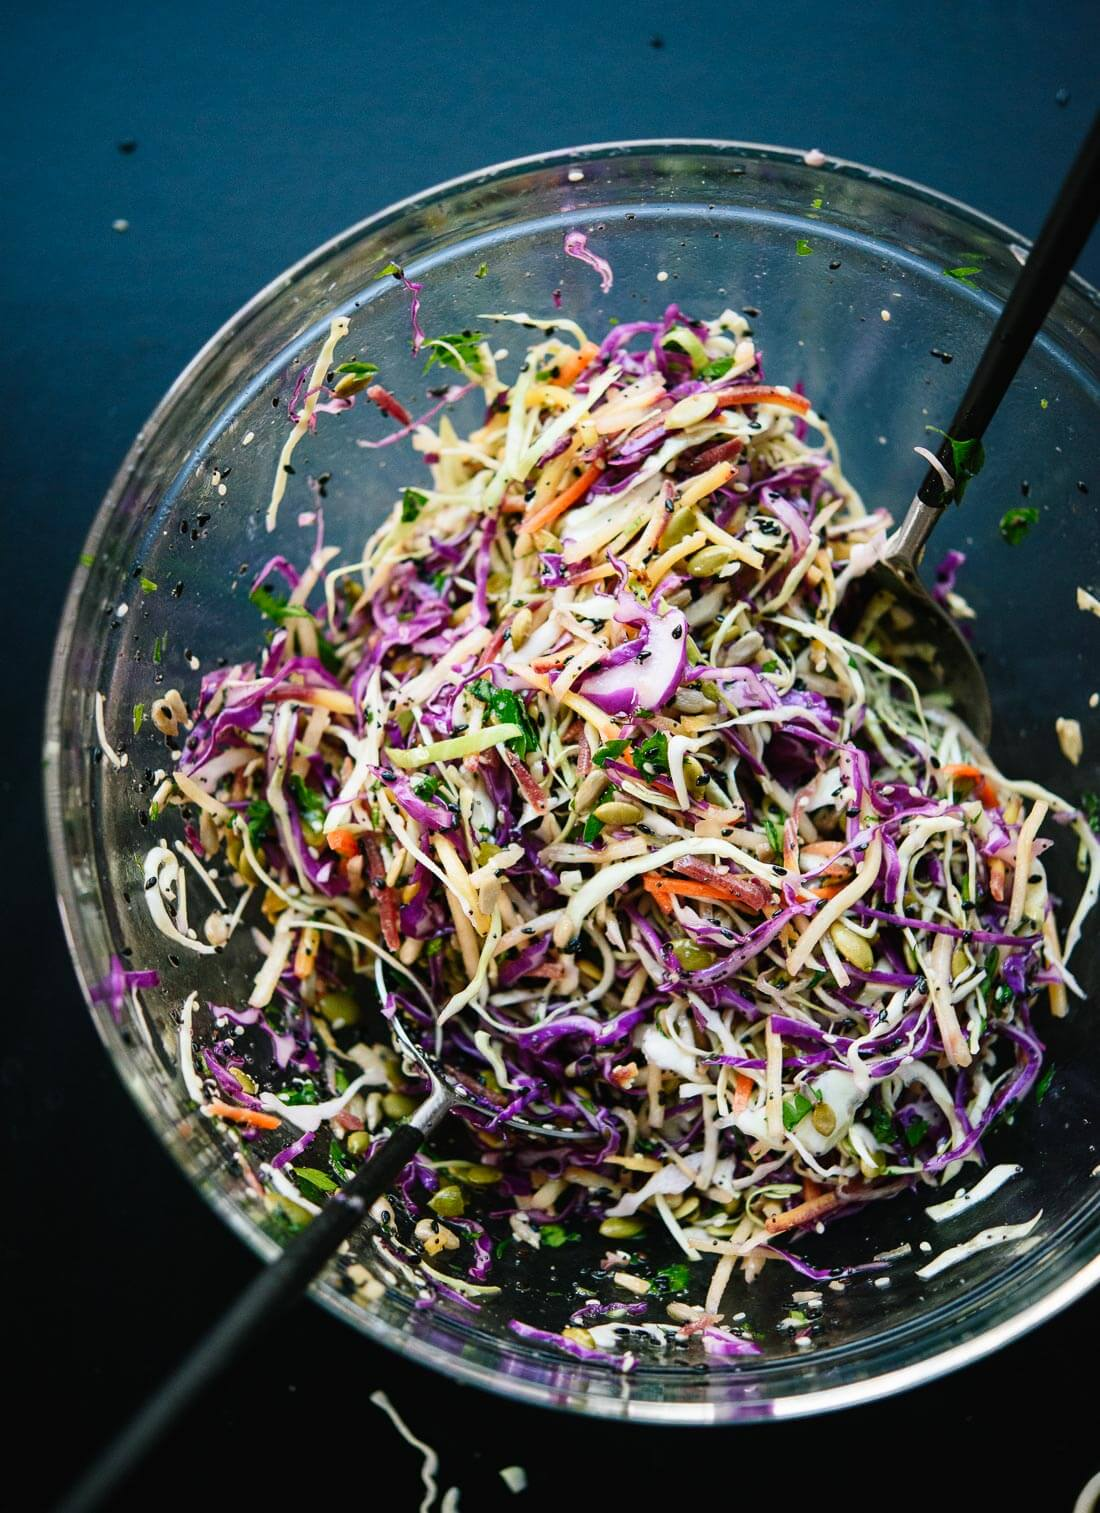 This healthy slaw recipe tastes amazing! It's made with a simple lemon dressing and features toasted sunflower and pumpkin seeds. Gluten free and vegan. - cookieandkate.com